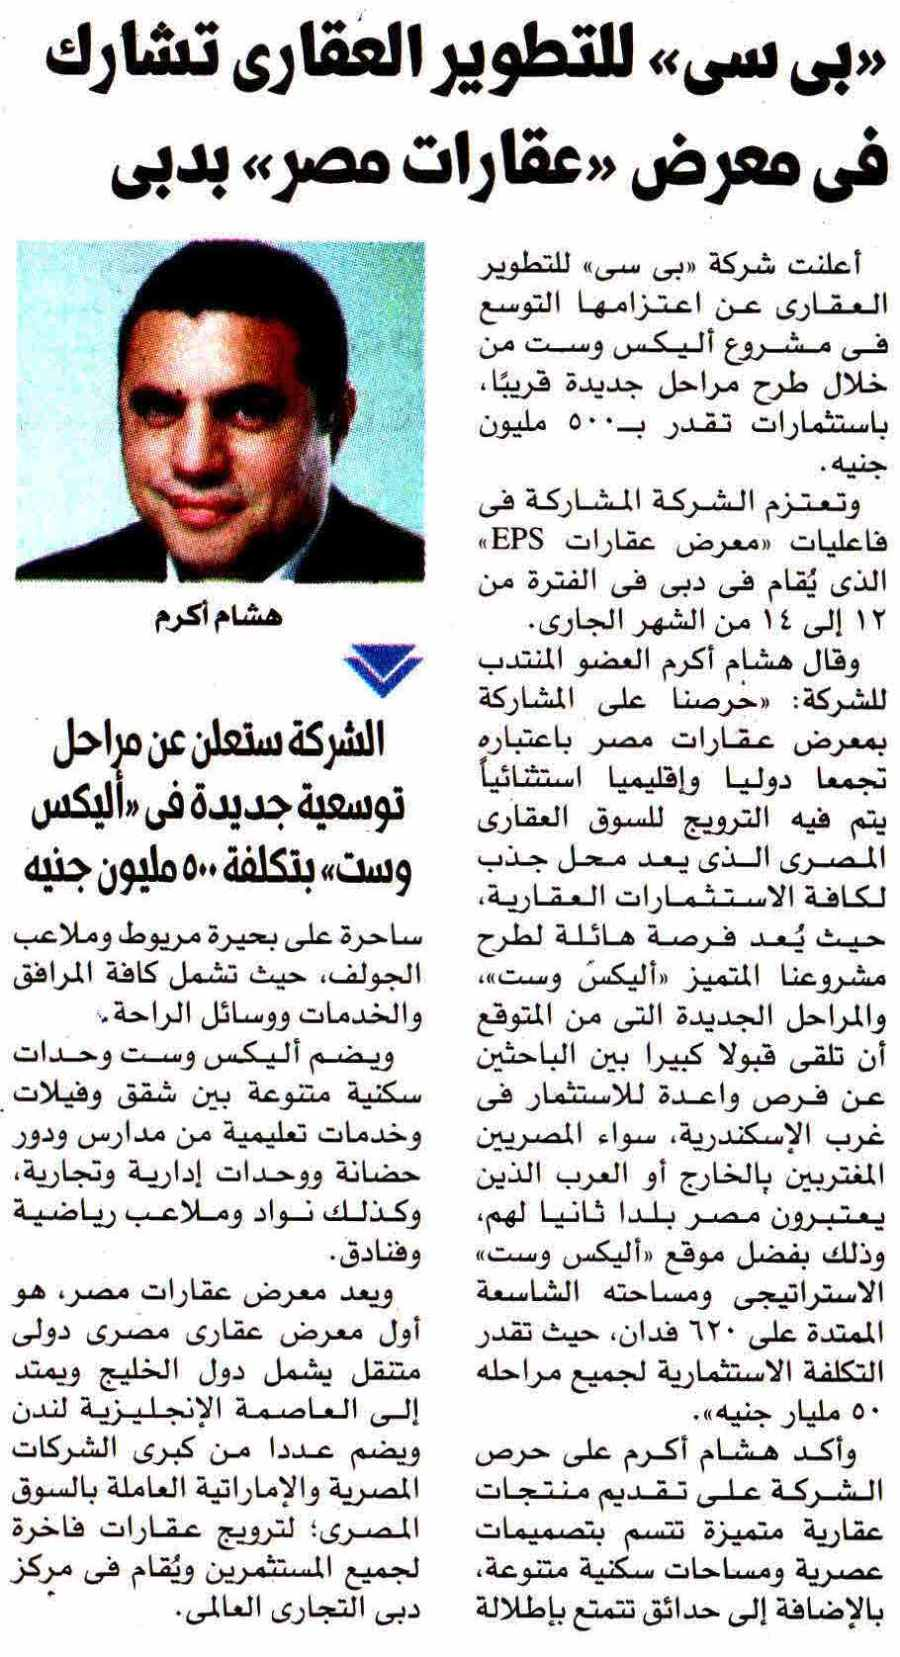 Al Masry Al Youm 22 April P.12 A.jpg